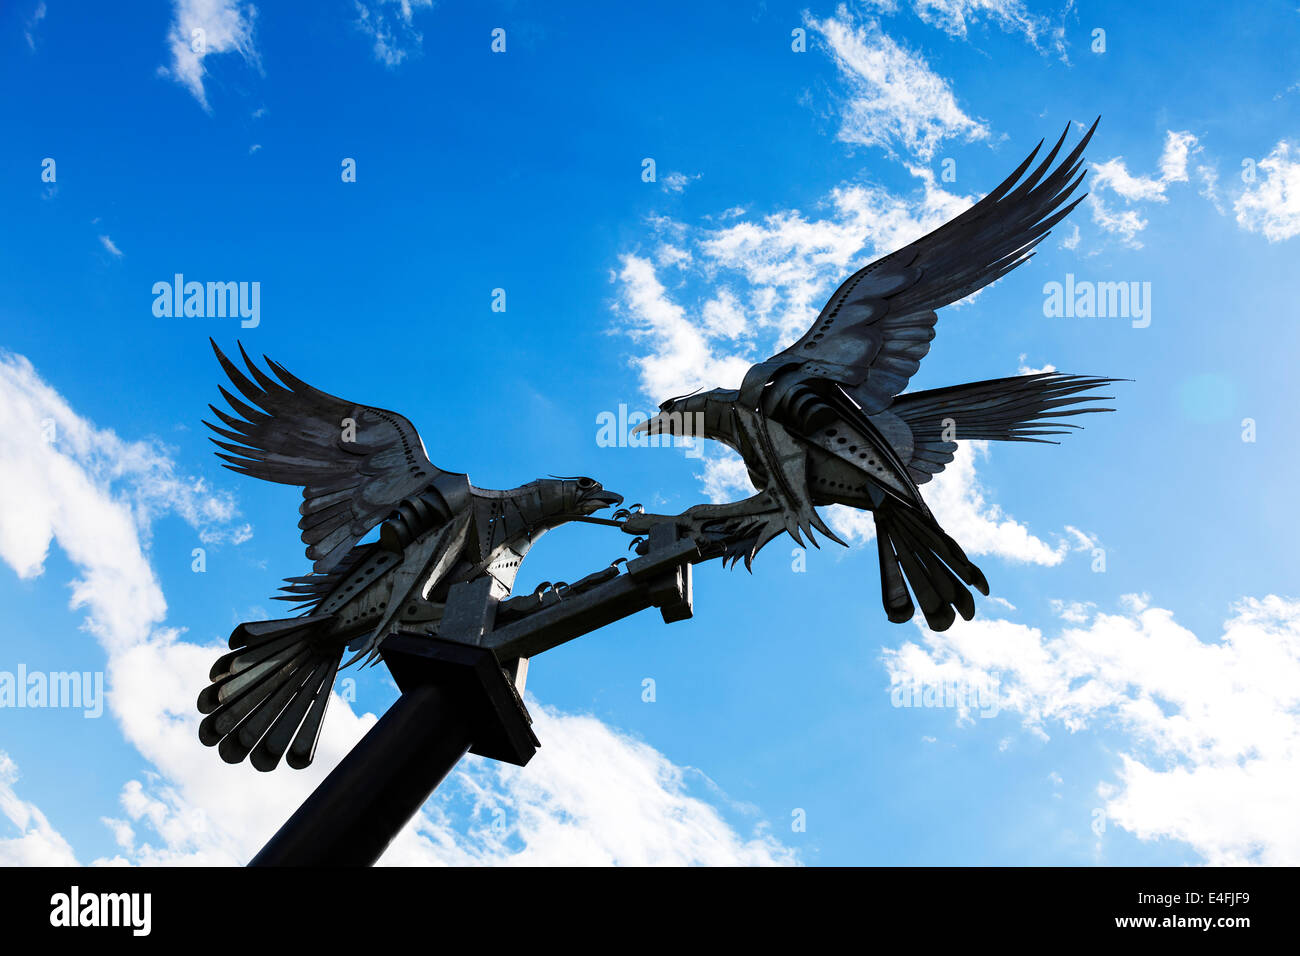 Oiseaux buzzards Malvern metal sculpture à Great Malvern par Walenty Pytel Photo Stock